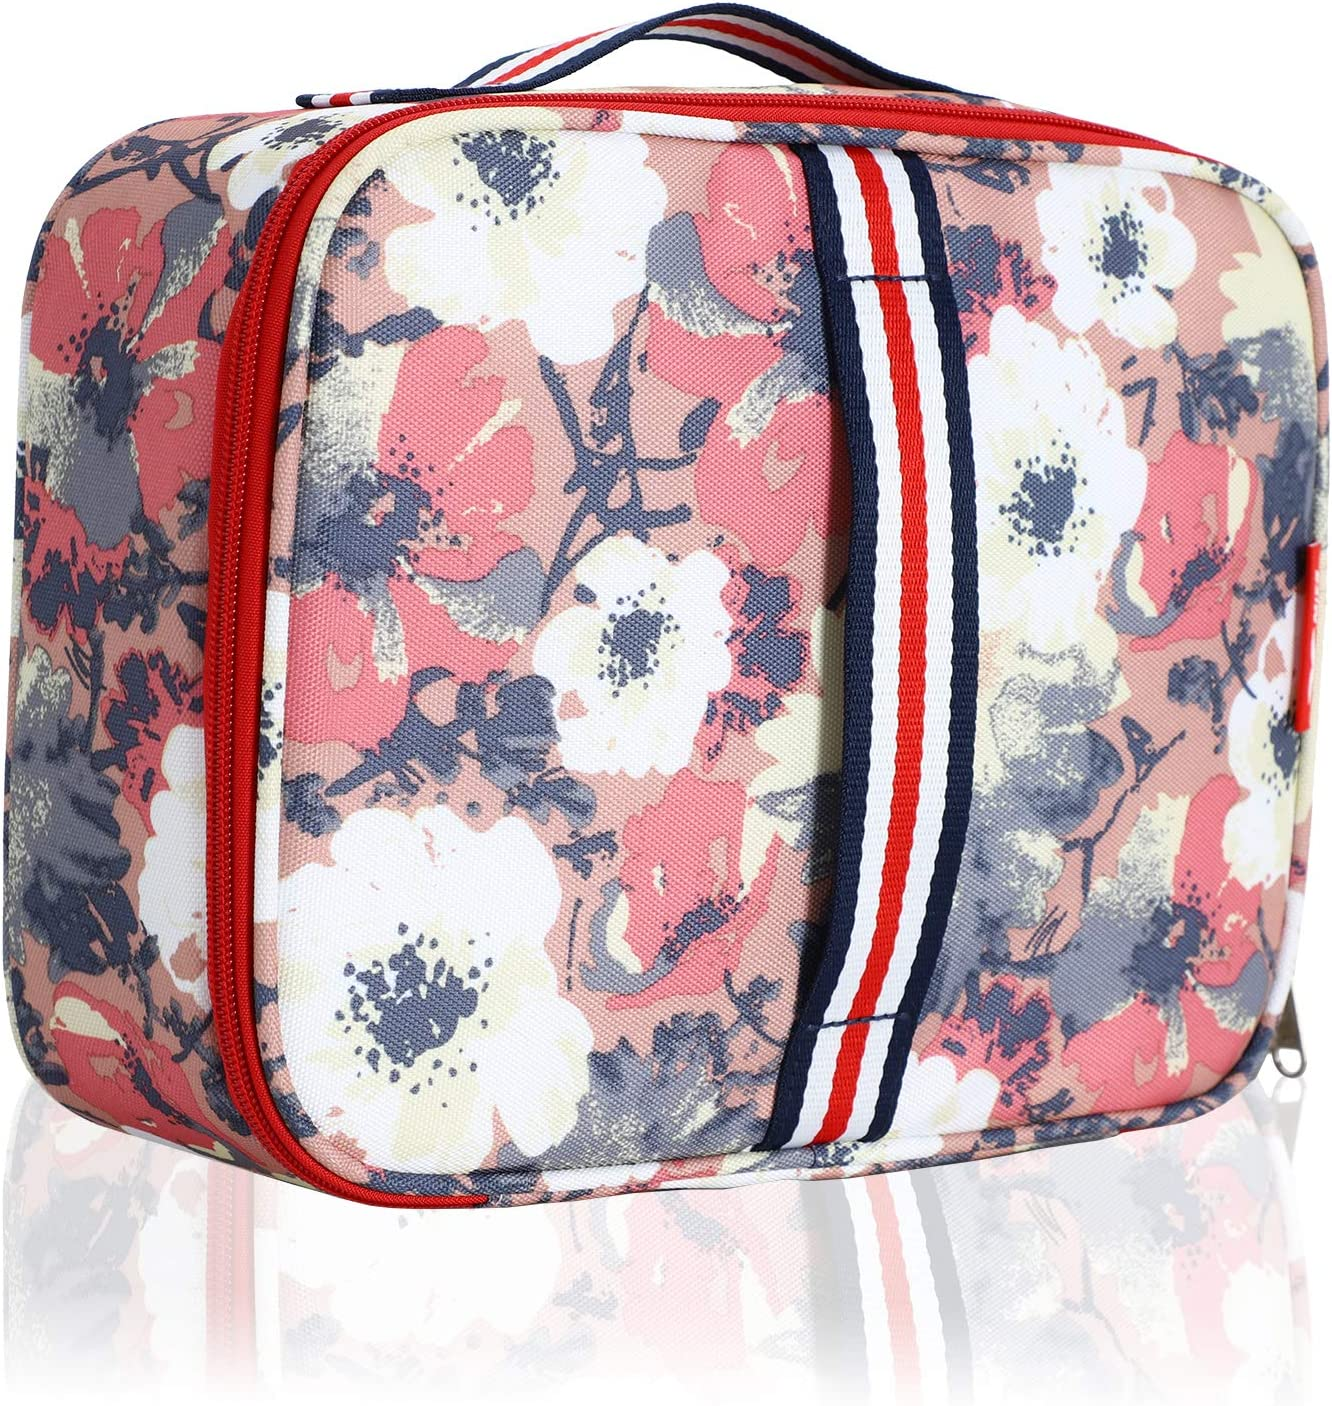 MIER Small Insulated Lunch Bag for Kid Men Women Mini Cooler Reusable Lunchbox Tote to School Office Picnic Travel, Leakproof and Portable, Apricot Anemone